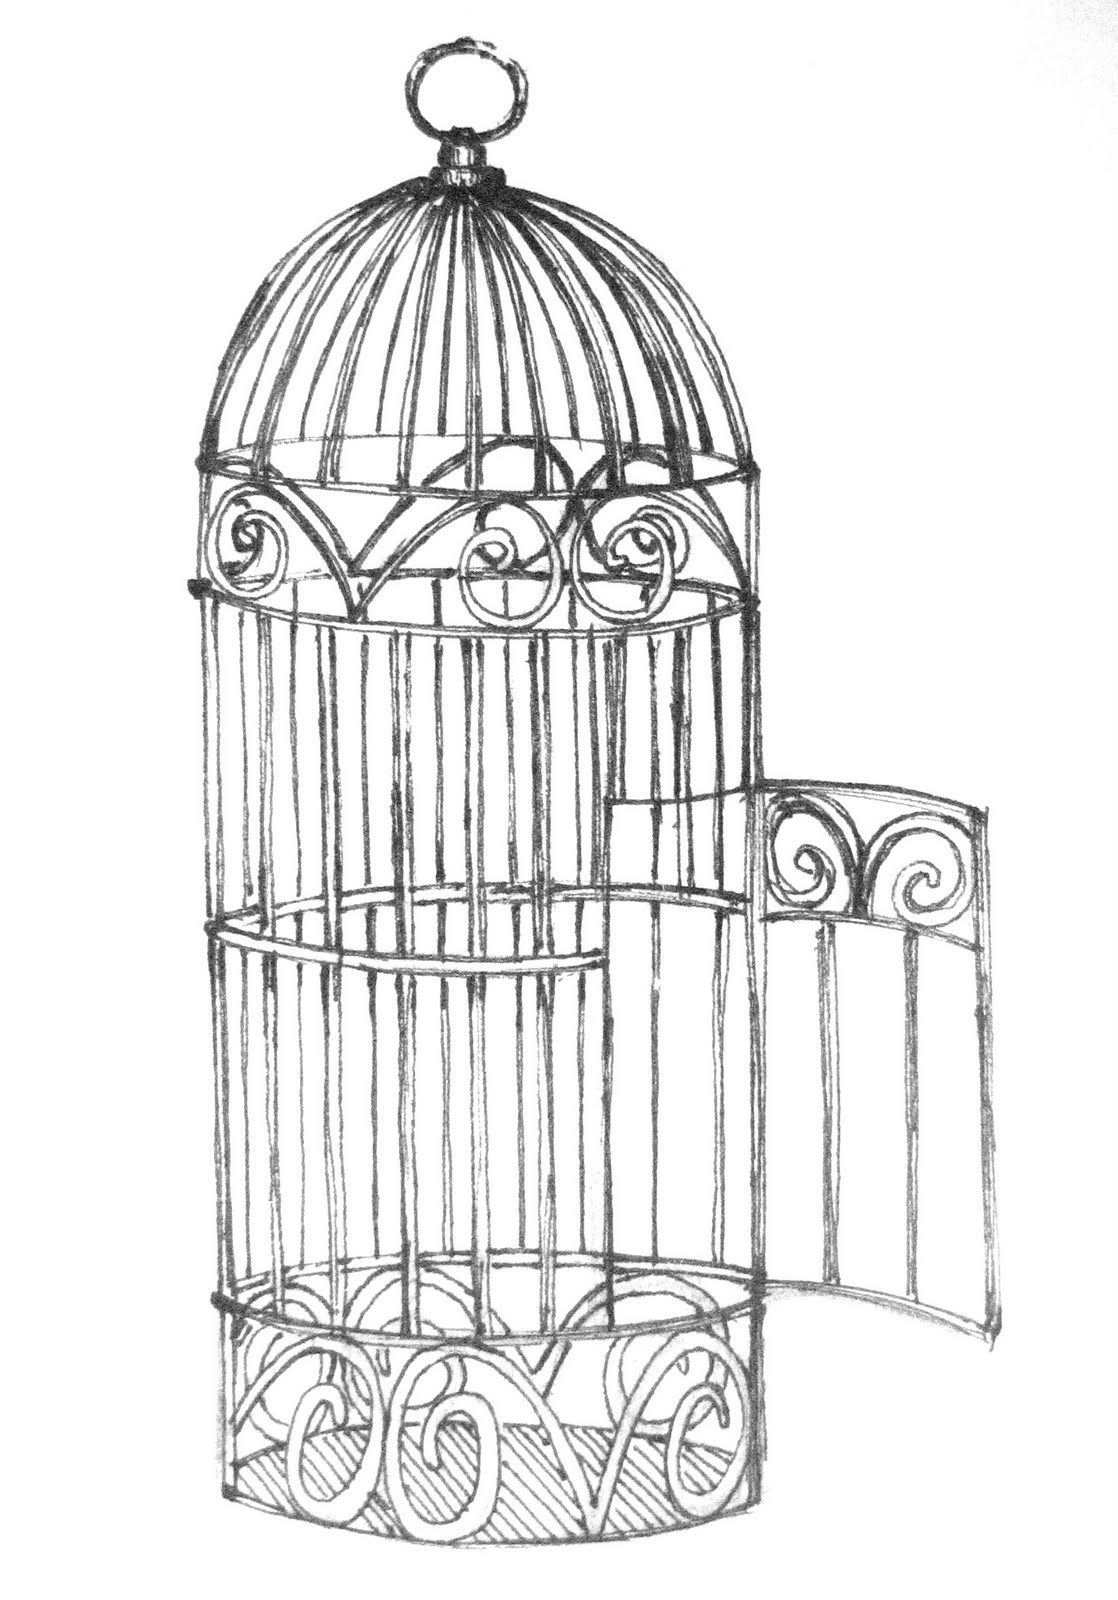 Antique bird cage drawing - photo#18